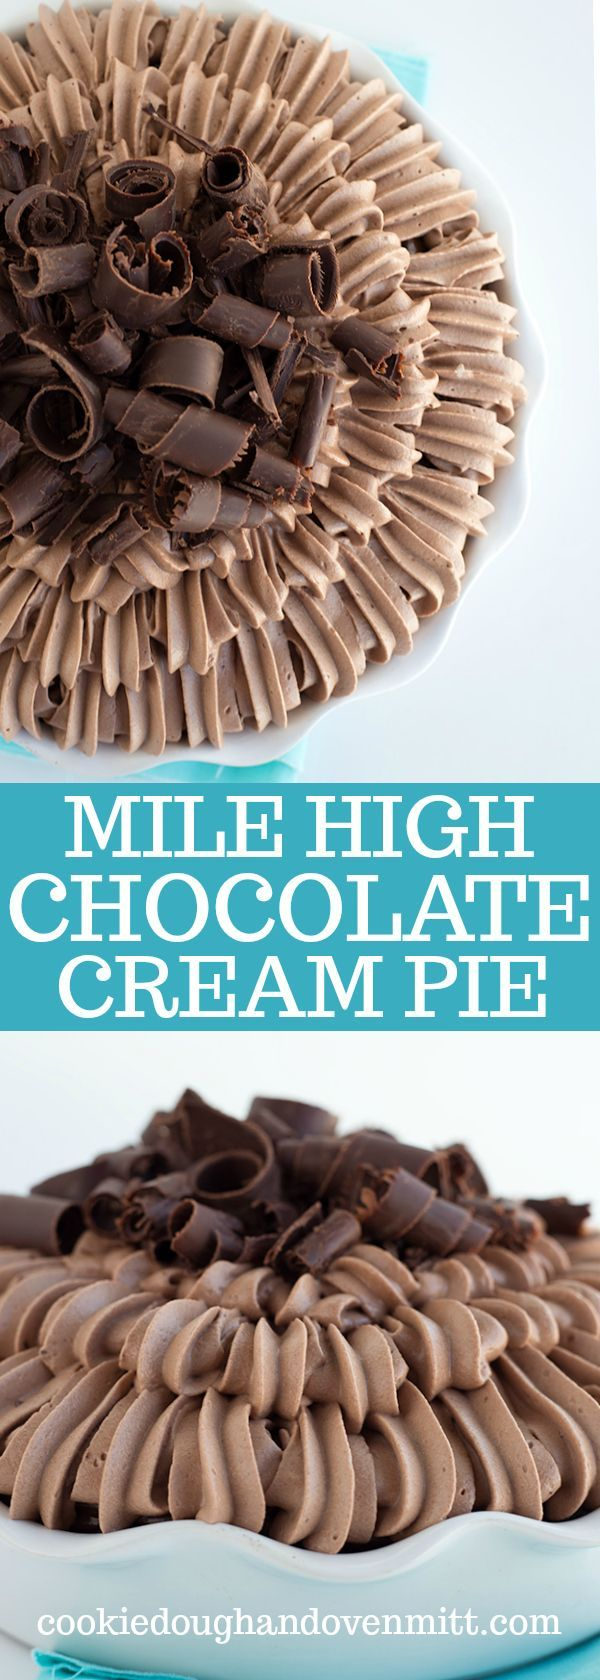 Mile High Chocolate Cream Pie - This is a chocolate lovers cream. It's an easy chocolate cream pie loaded with a chocolate cookie crust, a ganache layer, a chocolate french silk filling, chocolate whipped cream and chocolate curls. This makes the perfect pie for Valentine's day or any occasion! via @mmmirnanda